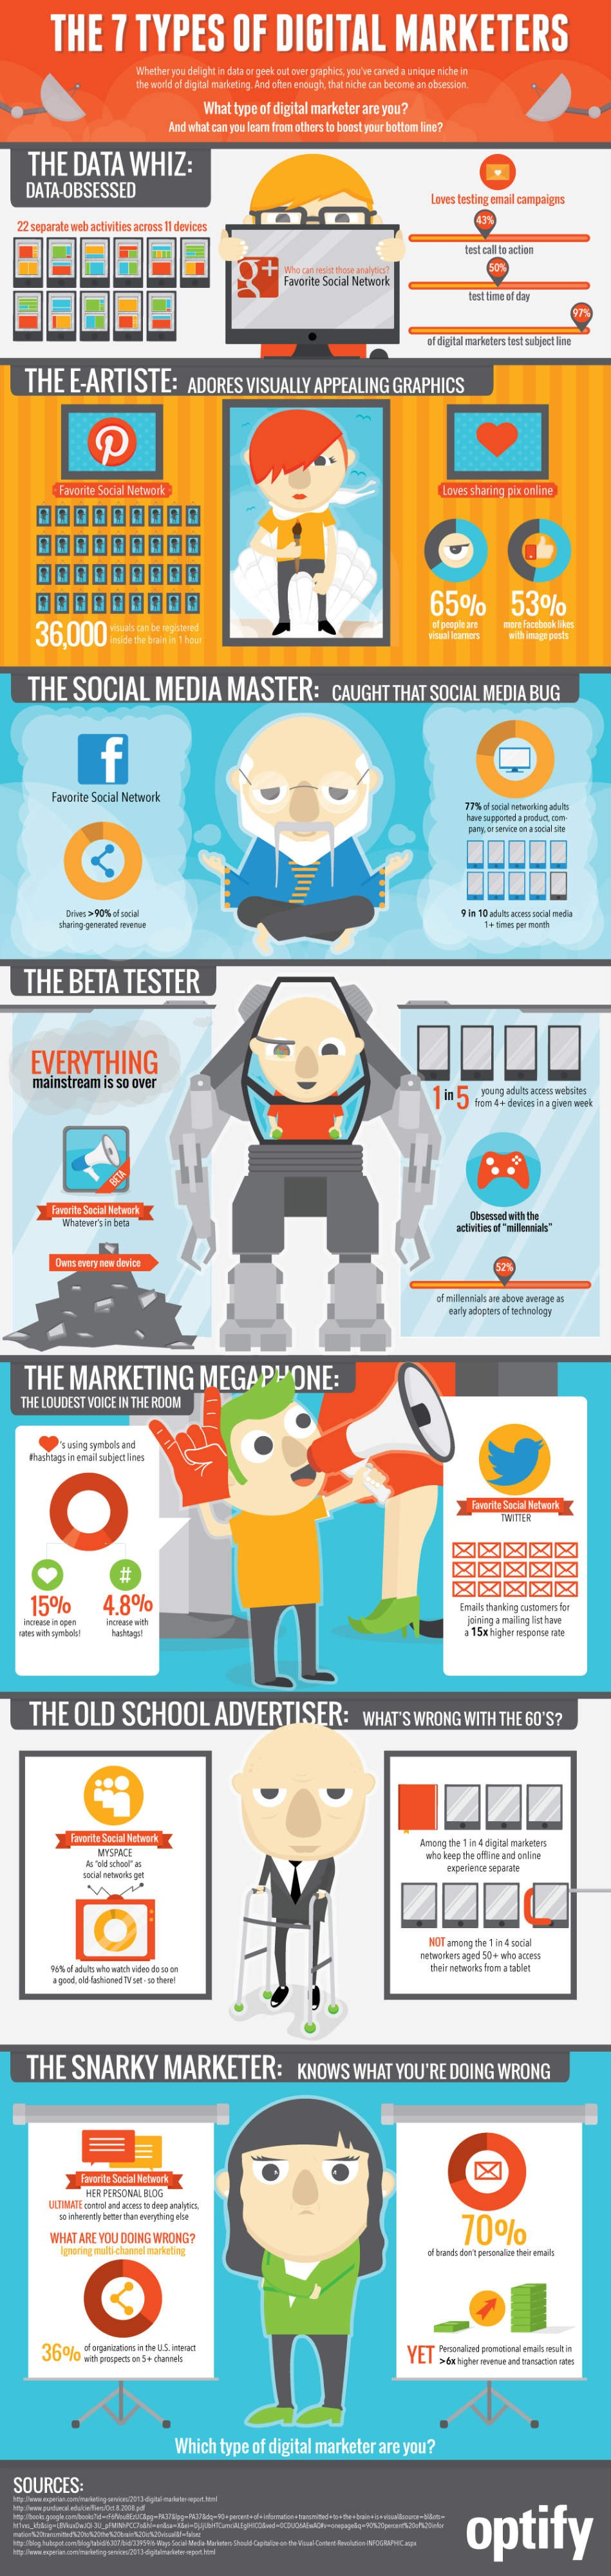 The 7 Types of Digital Marketers